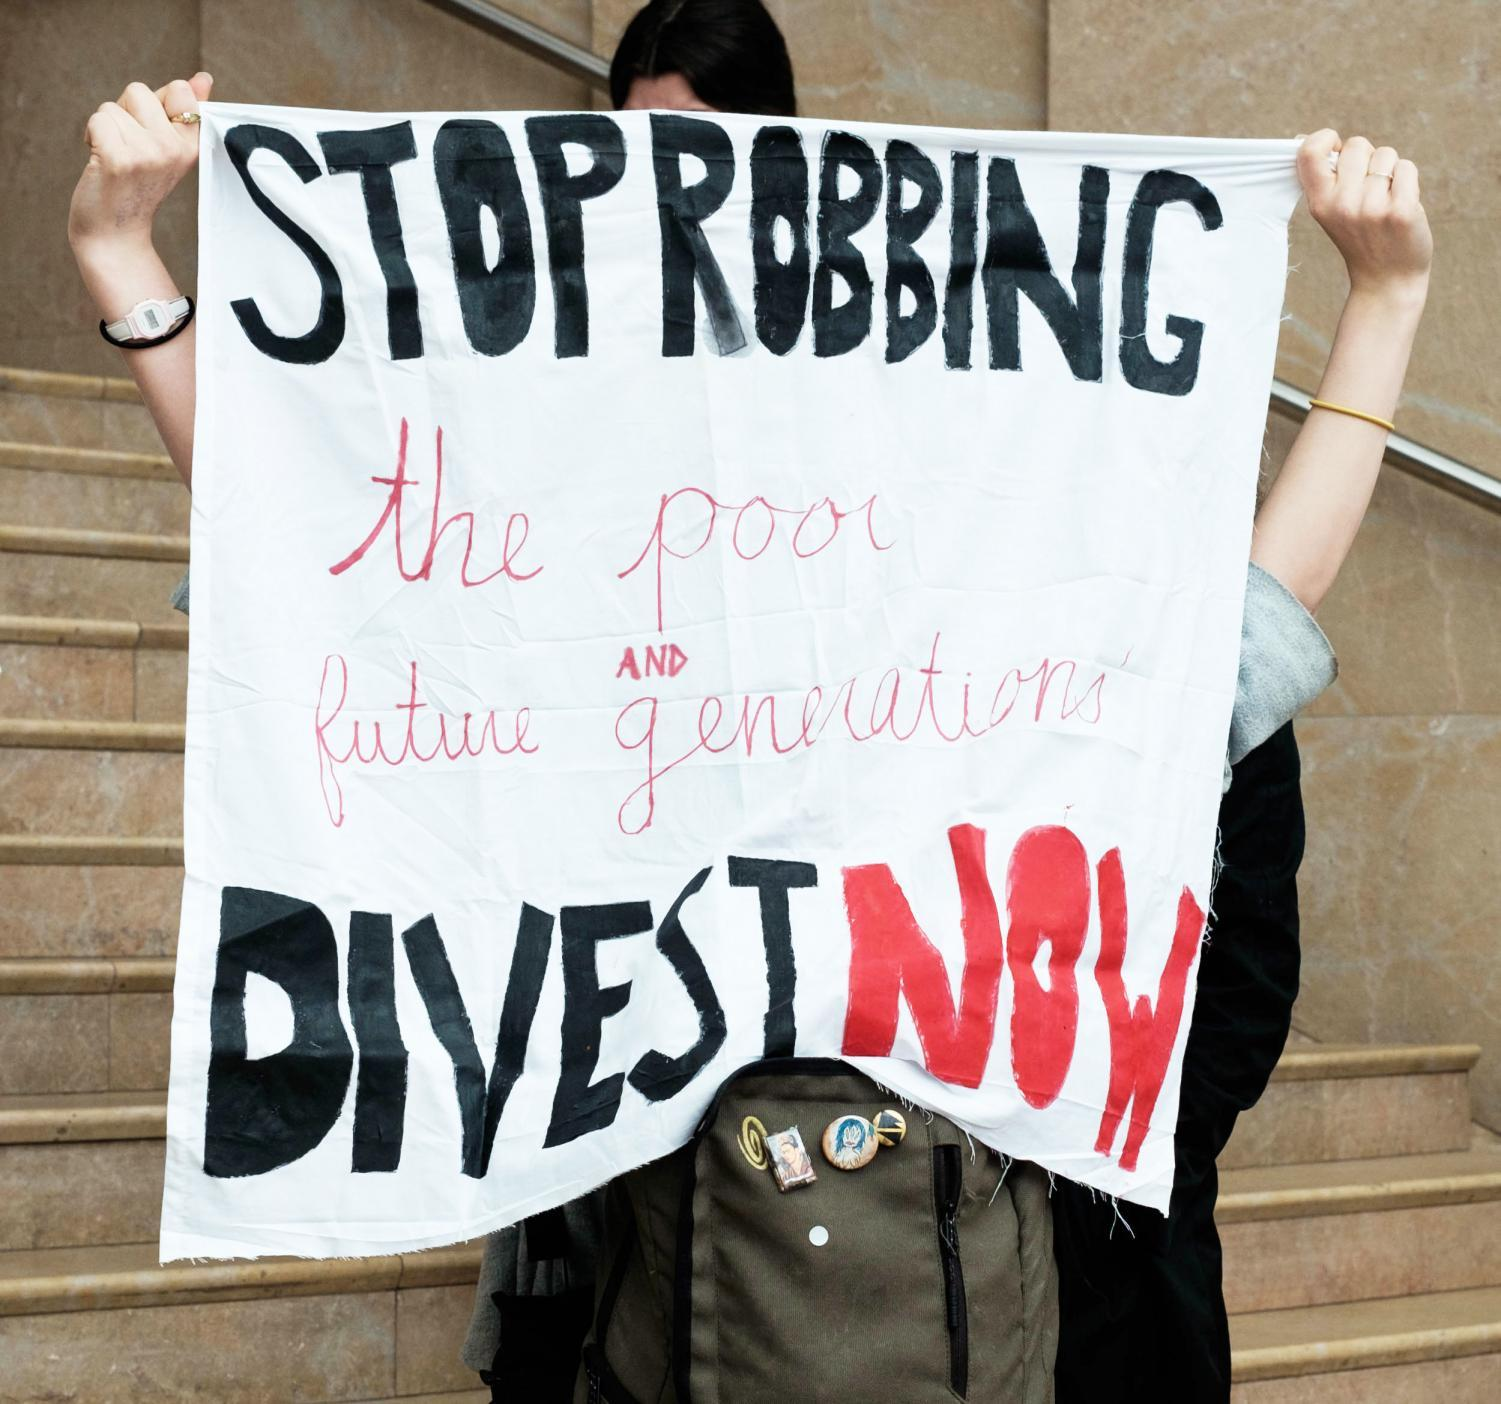 A demonstrator holds a banner that demands NYU to terminate all investments in fossil fuel companies.